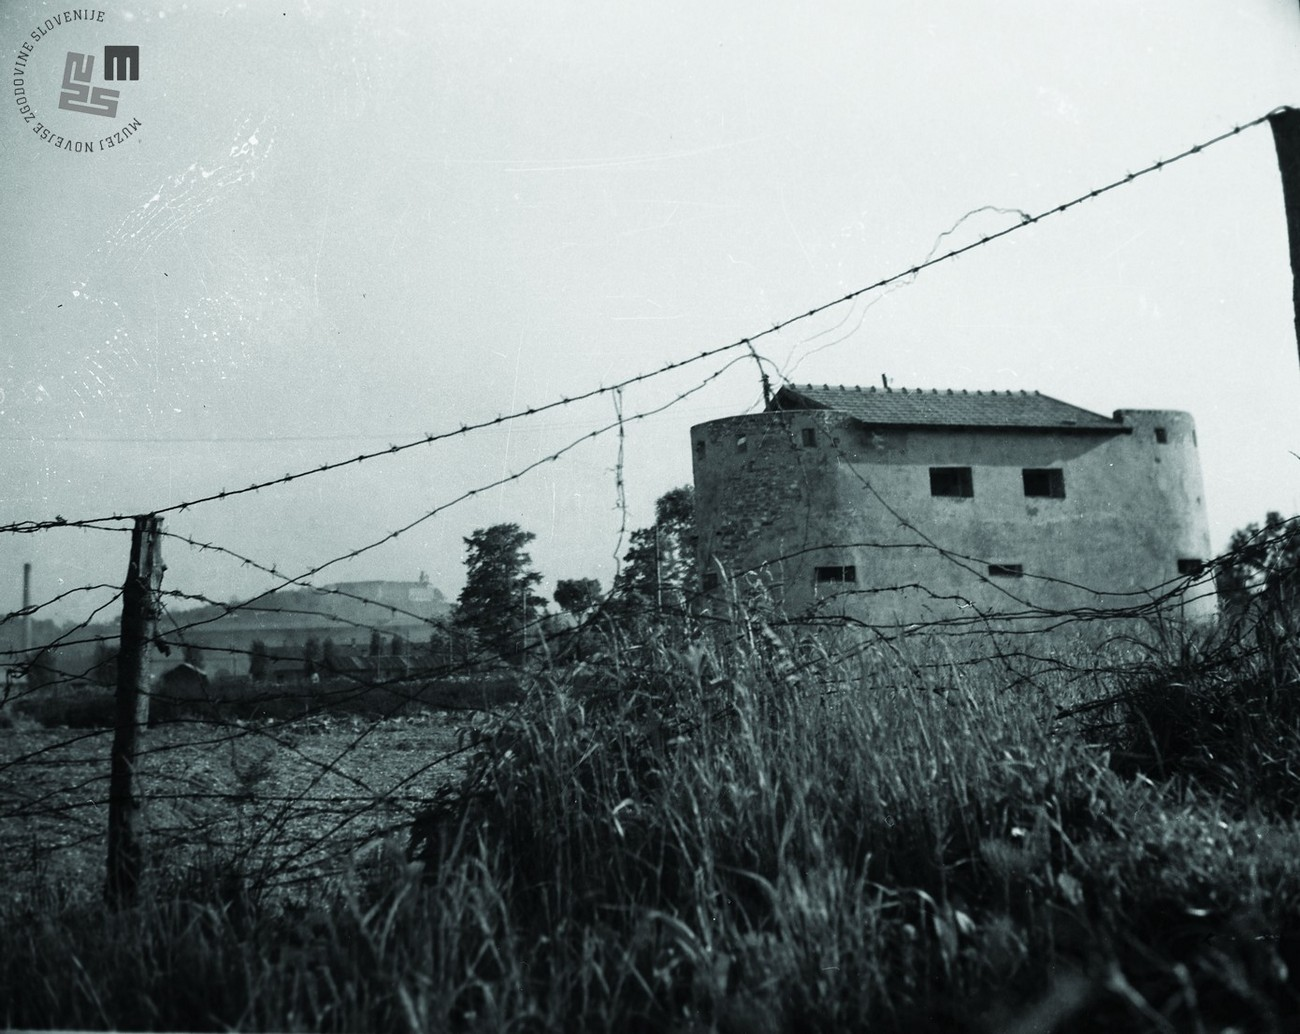 Wire around the defence bunker close to the erstwhile Evangelical cemetery in Navje in the present- day district of Zelena jama. Ljubljana Castle in the background. In total, the works required 1.770.000 building stones, 120.000 bricks, 1100m3 timbers, 1500 t concrete, 50 t lime, 10 t iron, 151 t barbed wire, 15,000 long stakes and 45 short stakes, roughly 1 t copper, 1000 electricity poles and 800 light bulbs. Author: Jakob Prešern. MNZS.